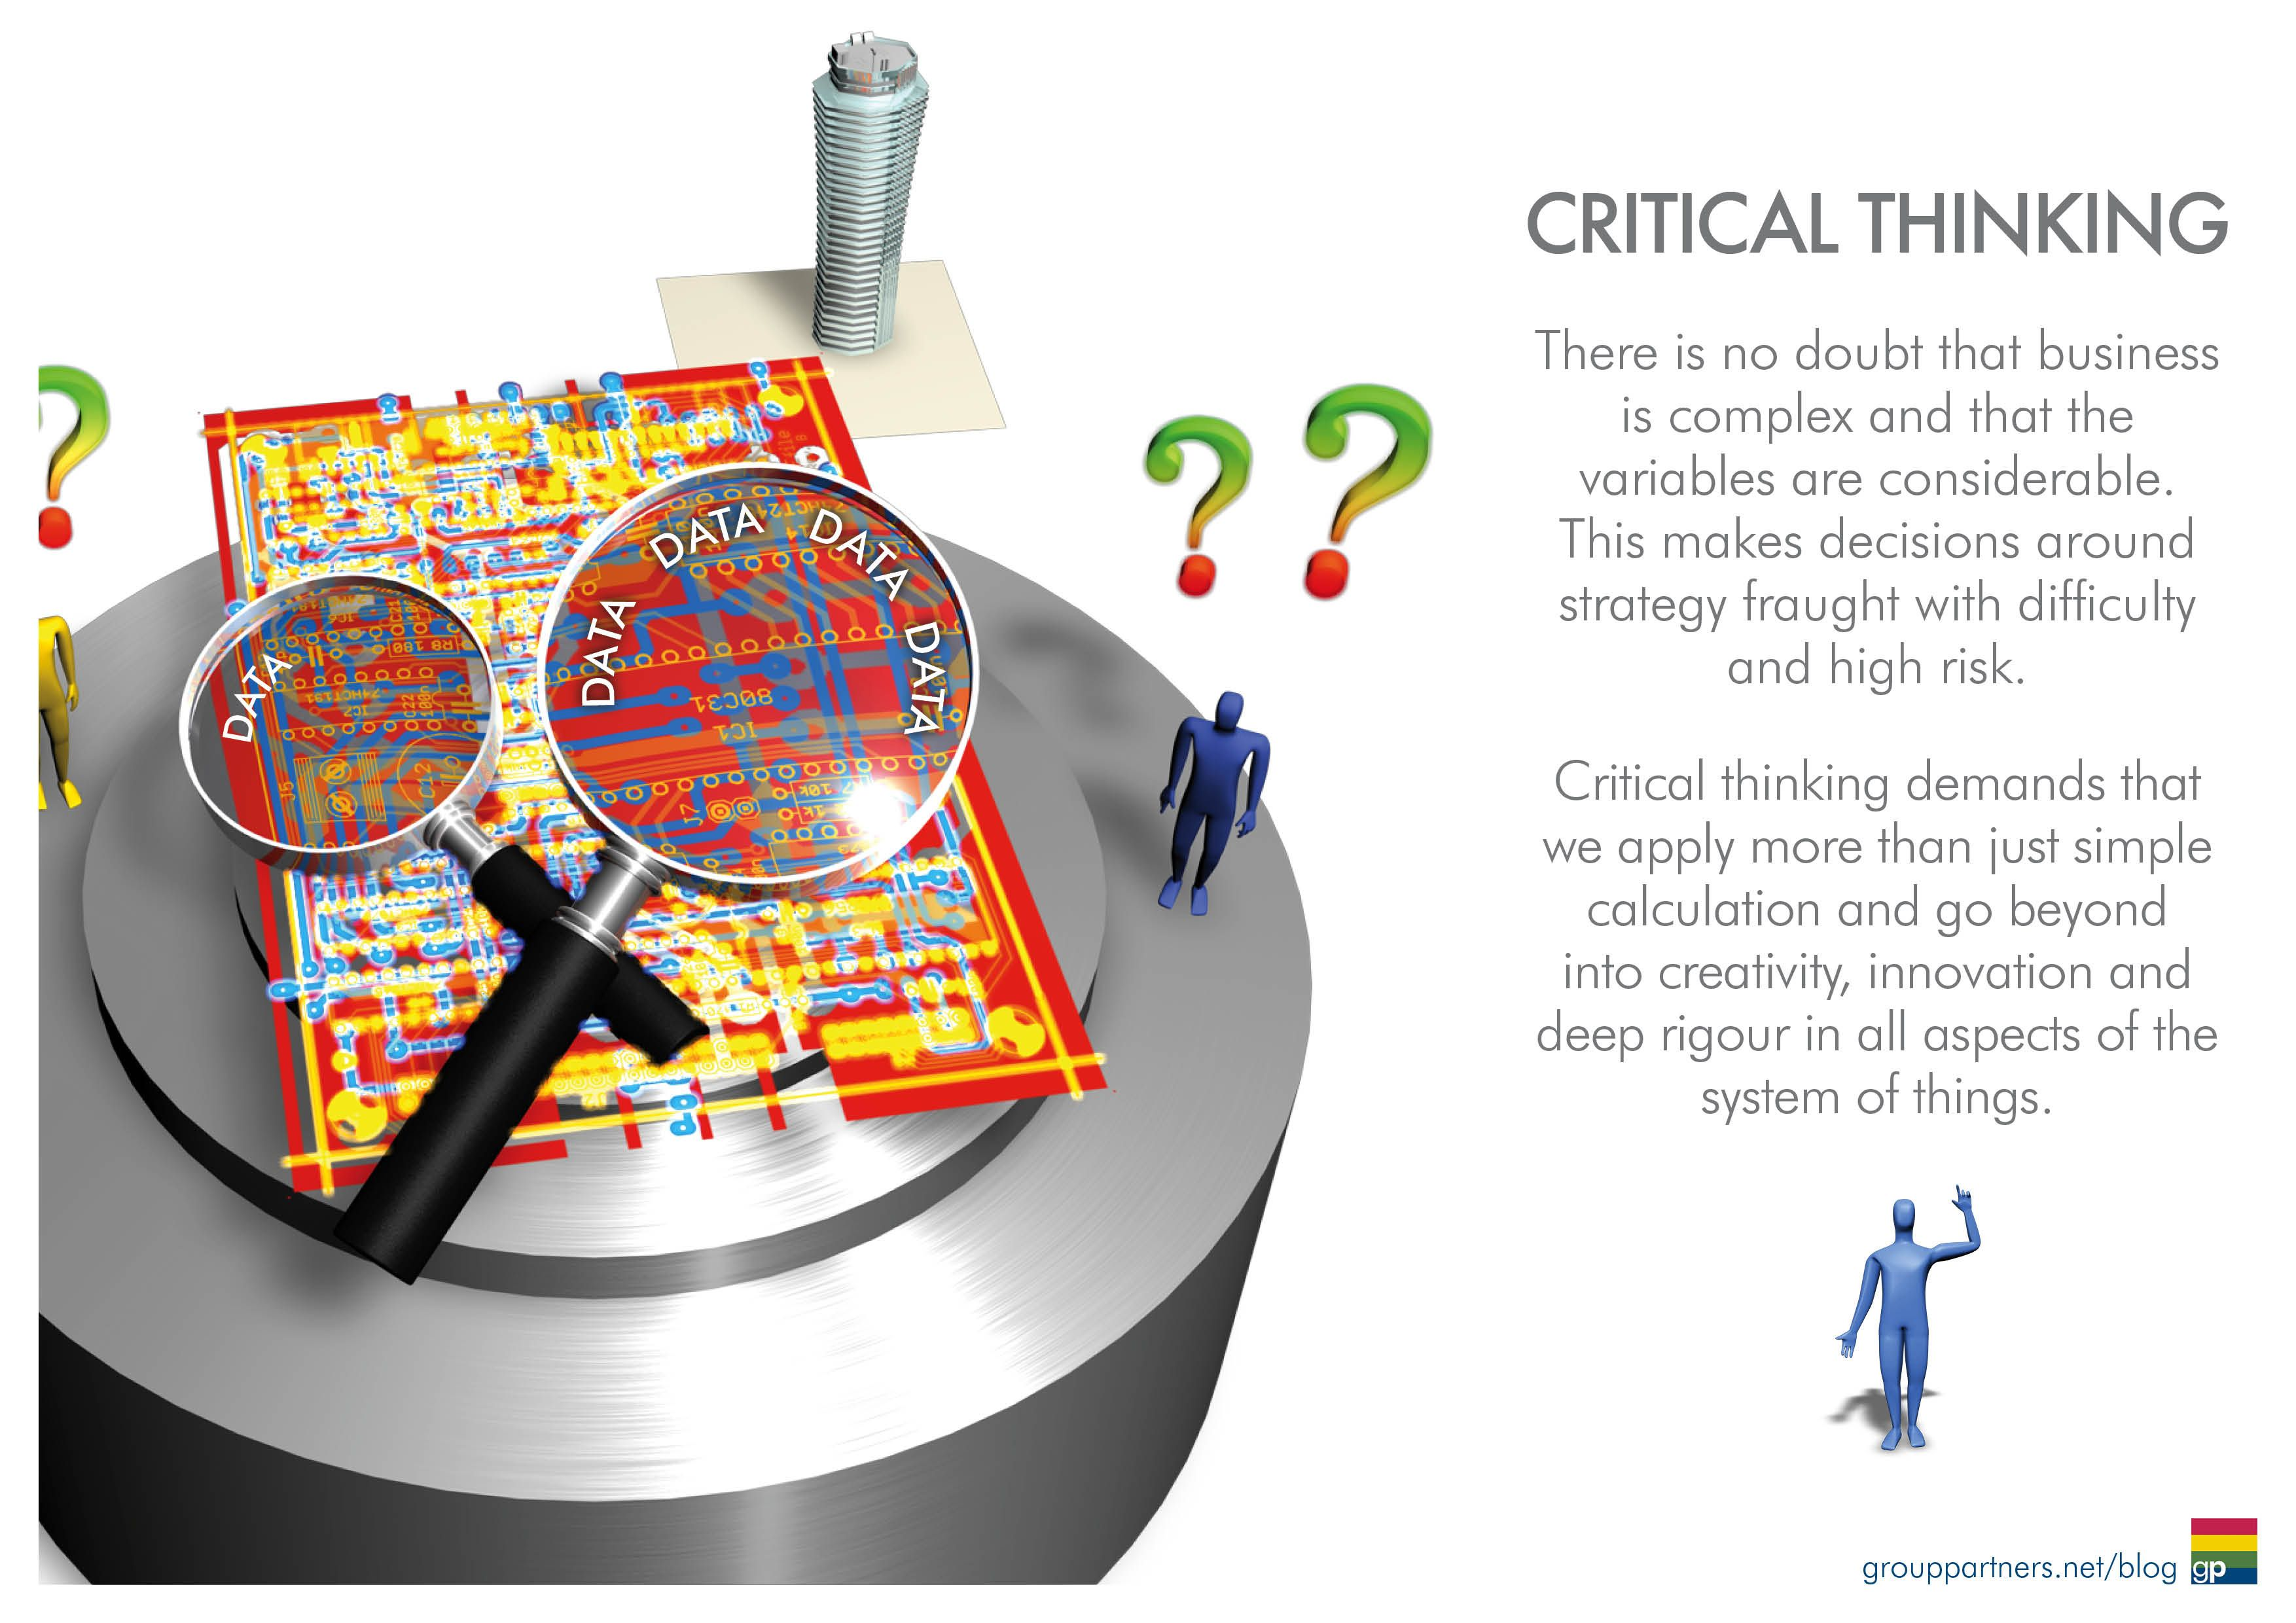 critical thinking includes a complex combination of skills Research says / creativity requires a mix of skills to solve complex problems—such as teaching students generic critical-thinking skills that.